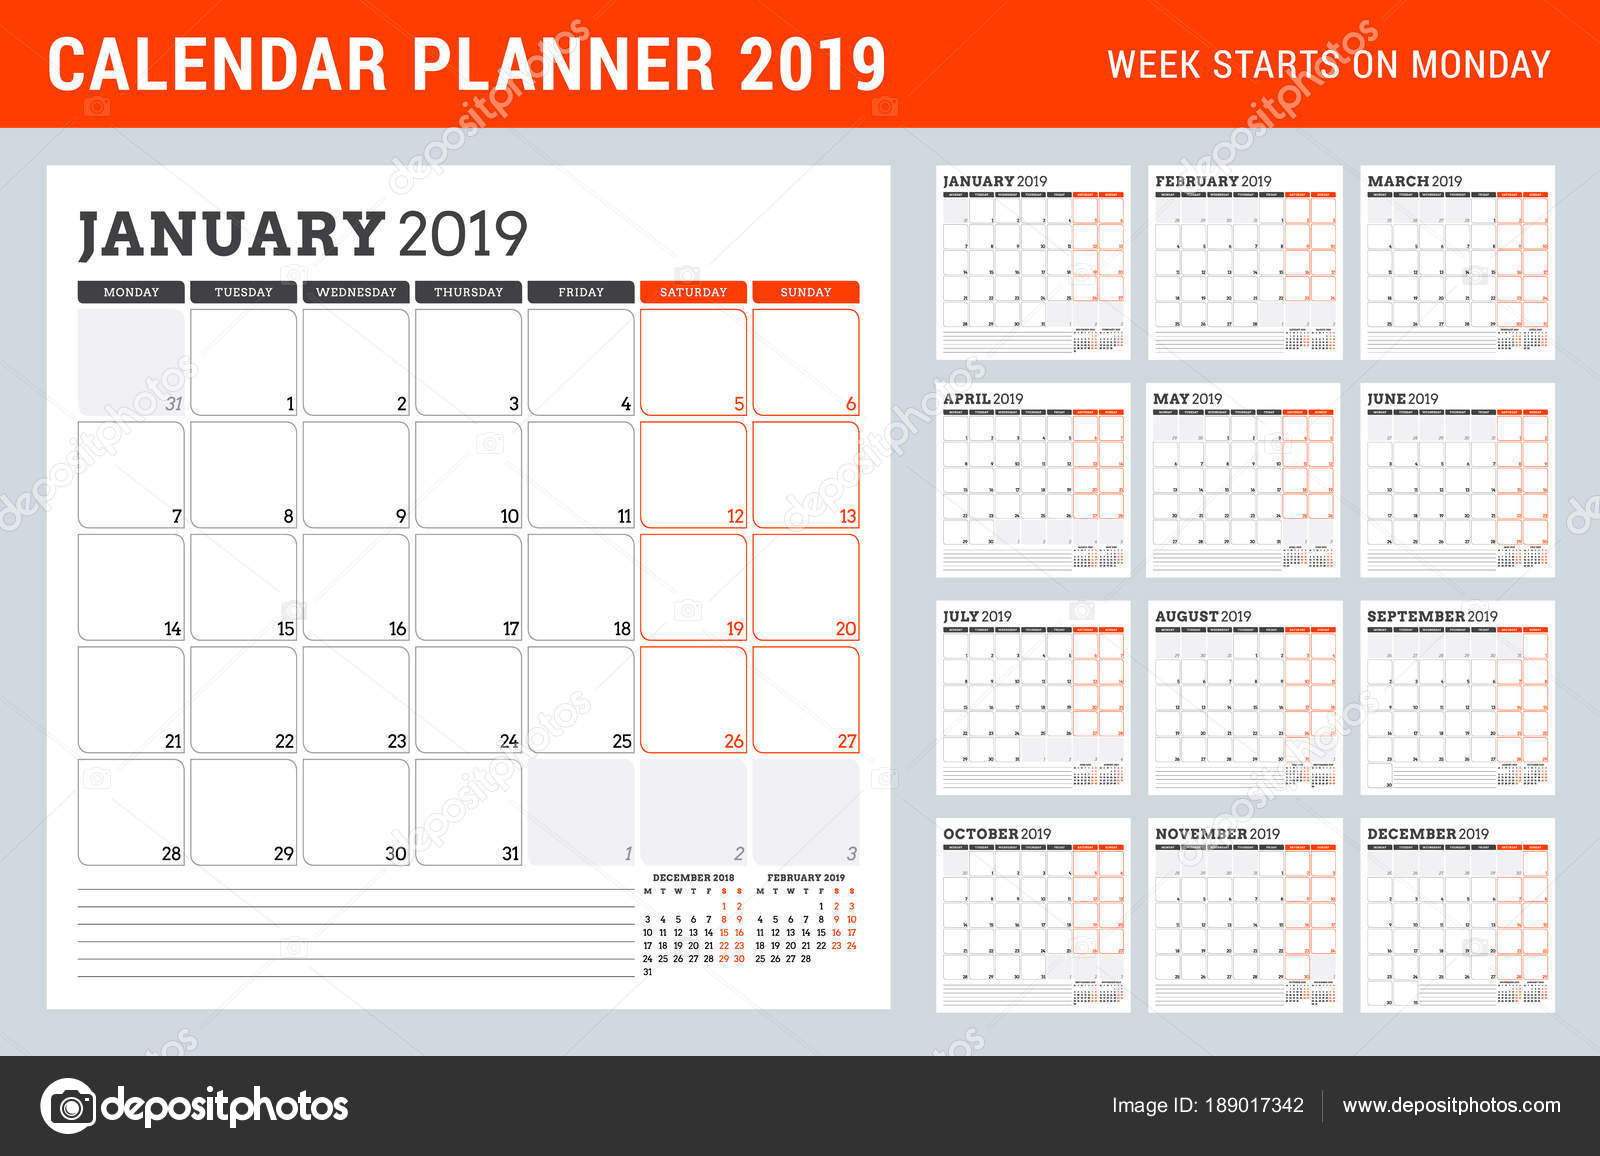 Calendar Planner For 2019 Year Week Starts On Monday Set Of 12